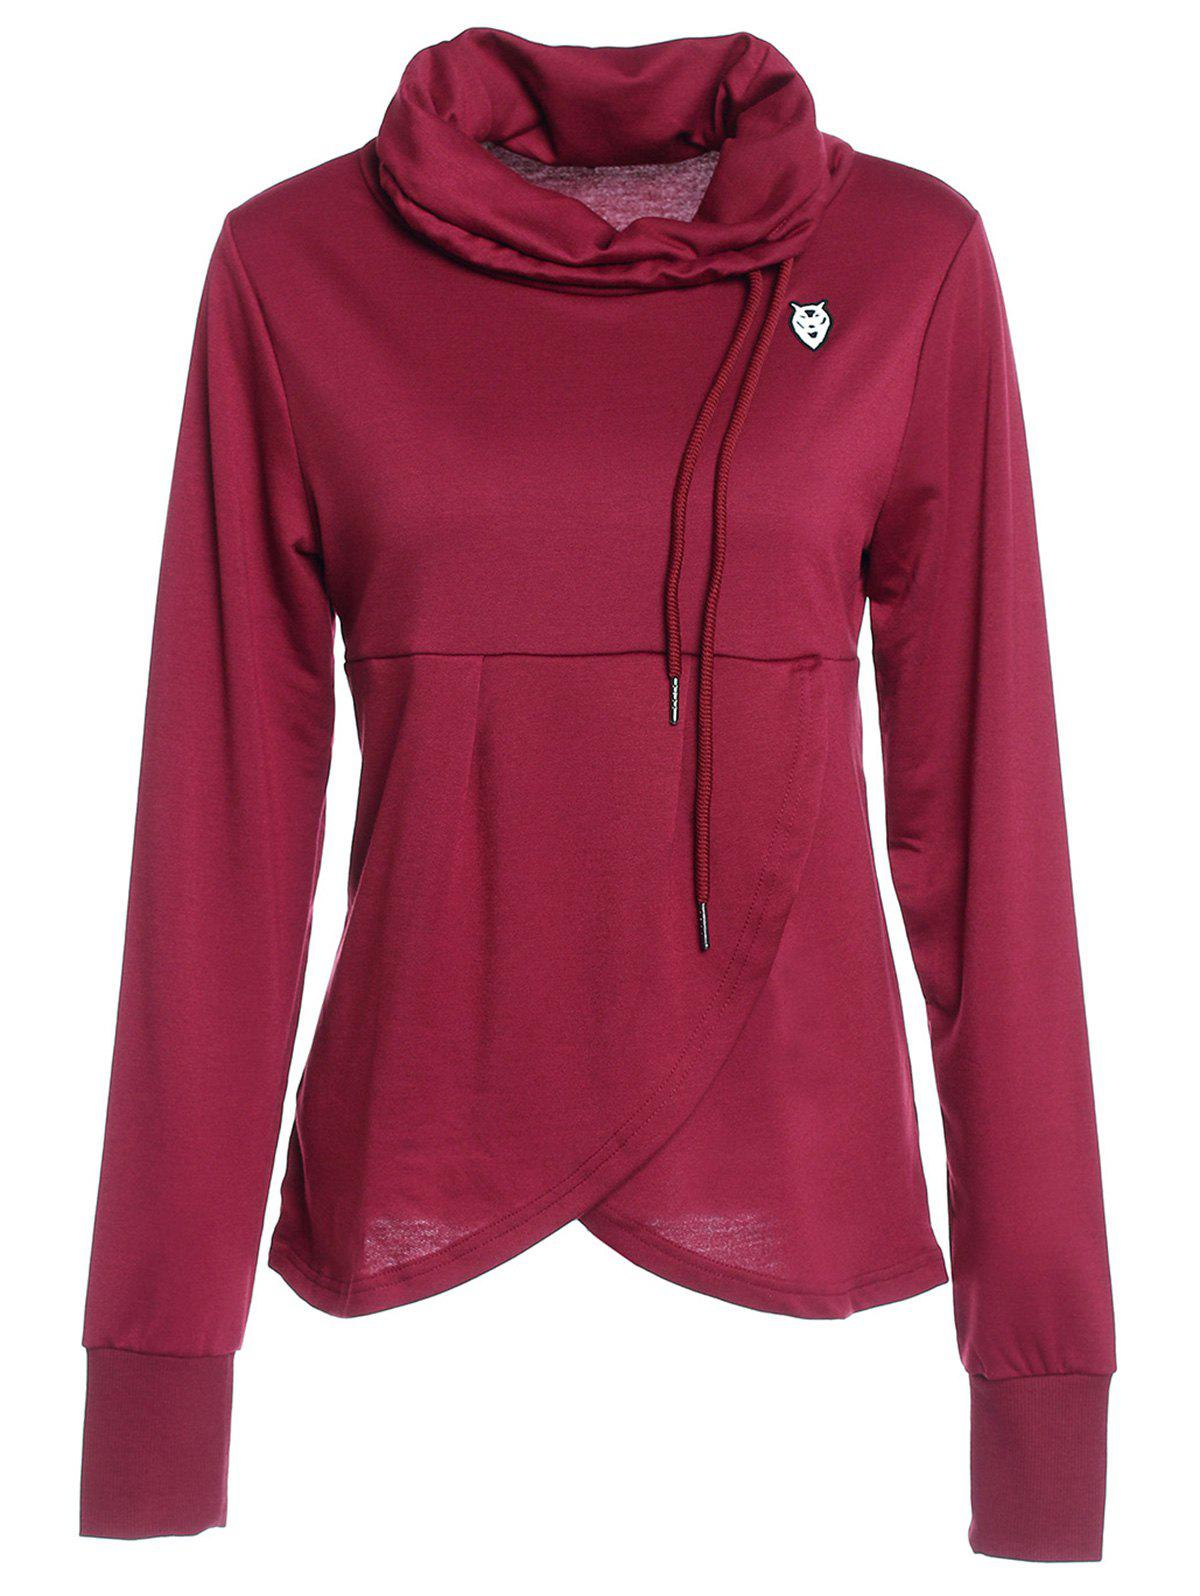 Petal Hem Drawstring Embroidered Sweatshirt - WINE RED XL